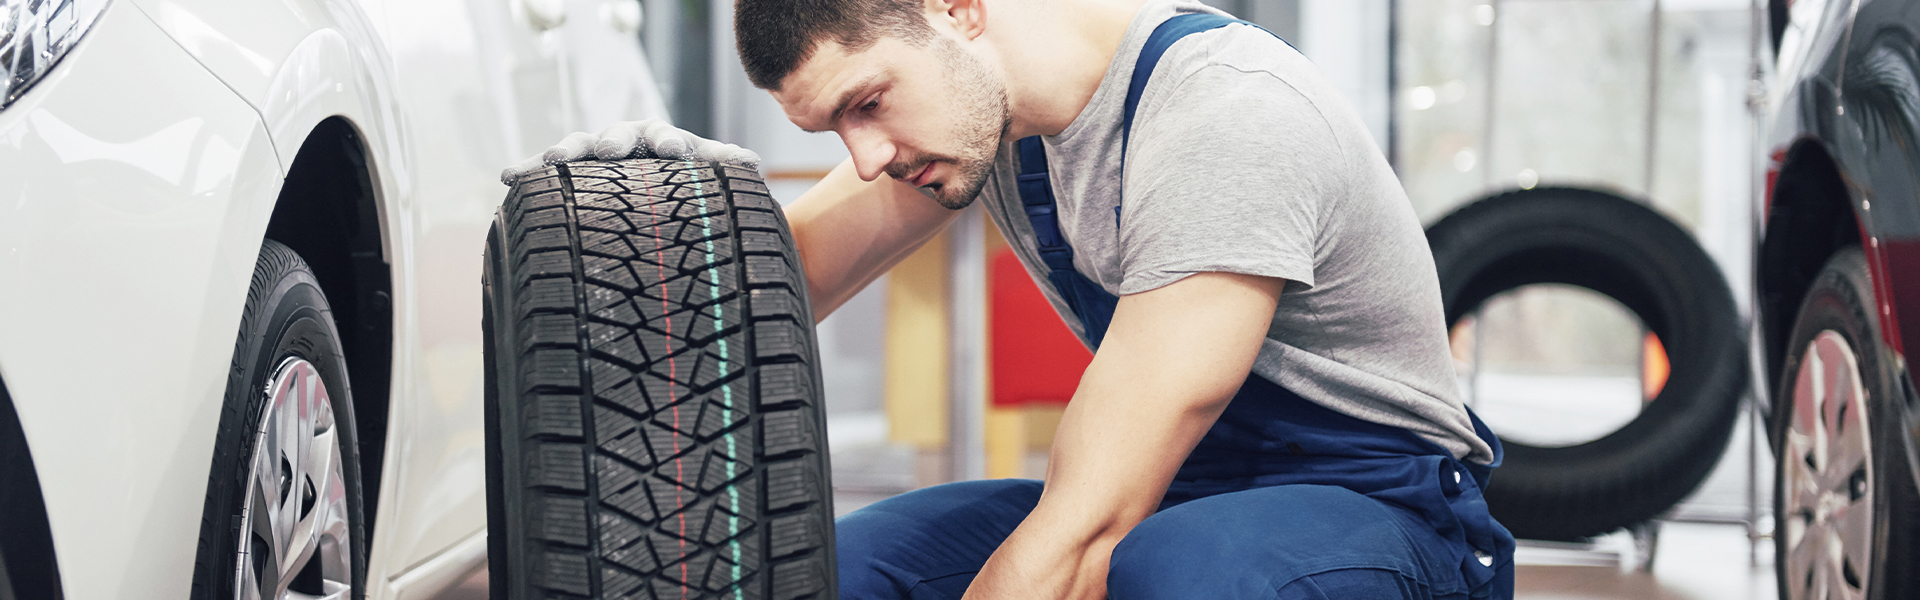 Washington Hyundai is a Hyundai Dealership in Washington near Canonsburg PA | Service Advisor Changing Tire on Vheicle